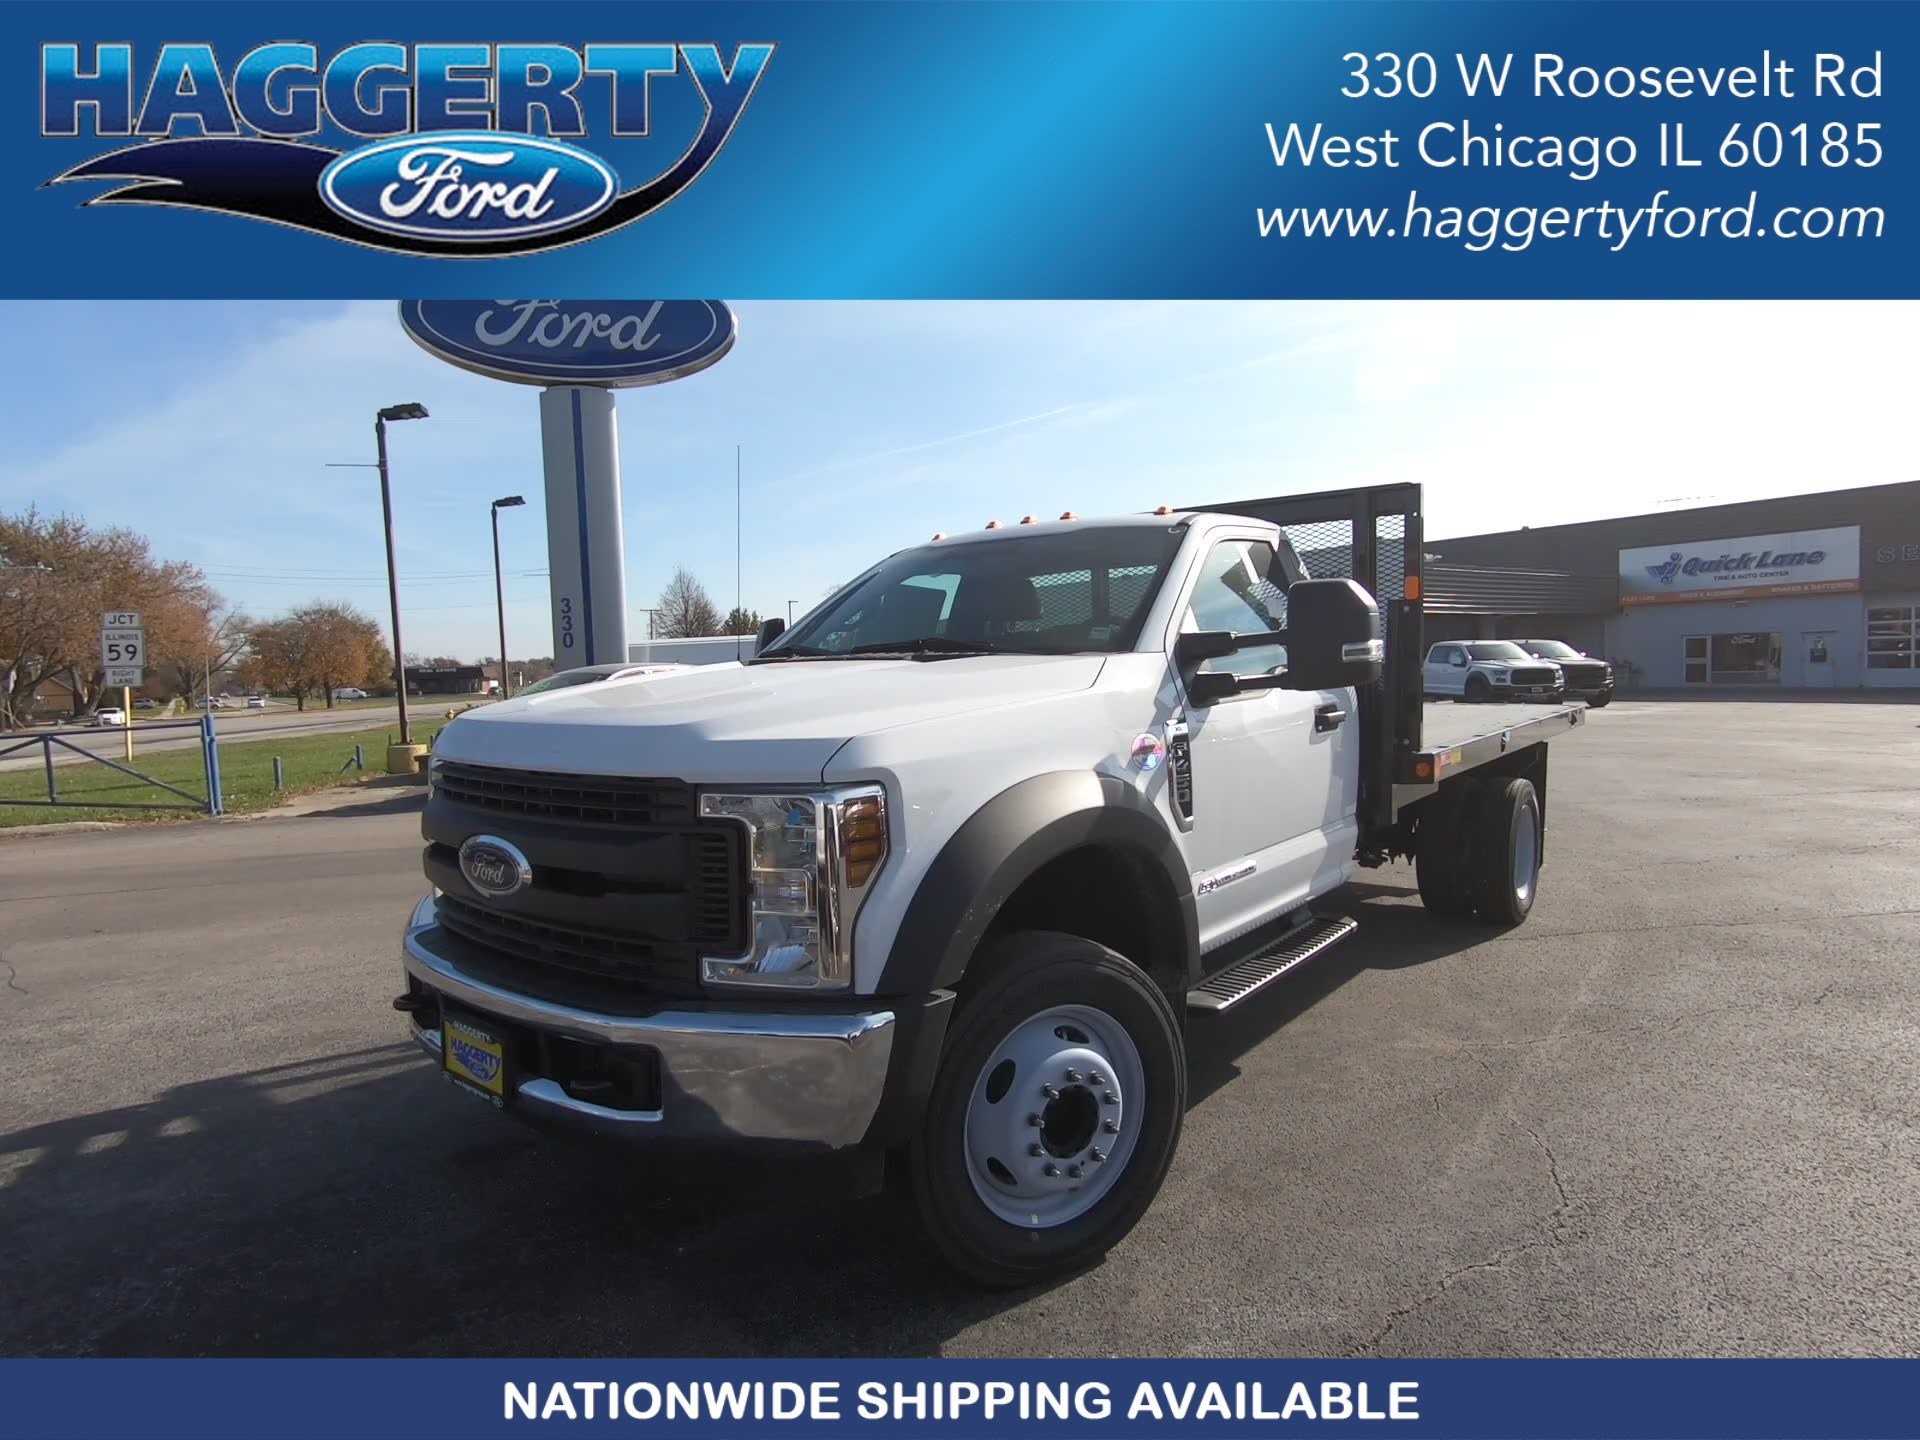 2011 ford F250 Upfitter Wiring New 2019 ford Super Duty F 450 Drw Xl Rwd Regular Cab Chassis Cab Of 2011 ford F250 Upfitter Wiring